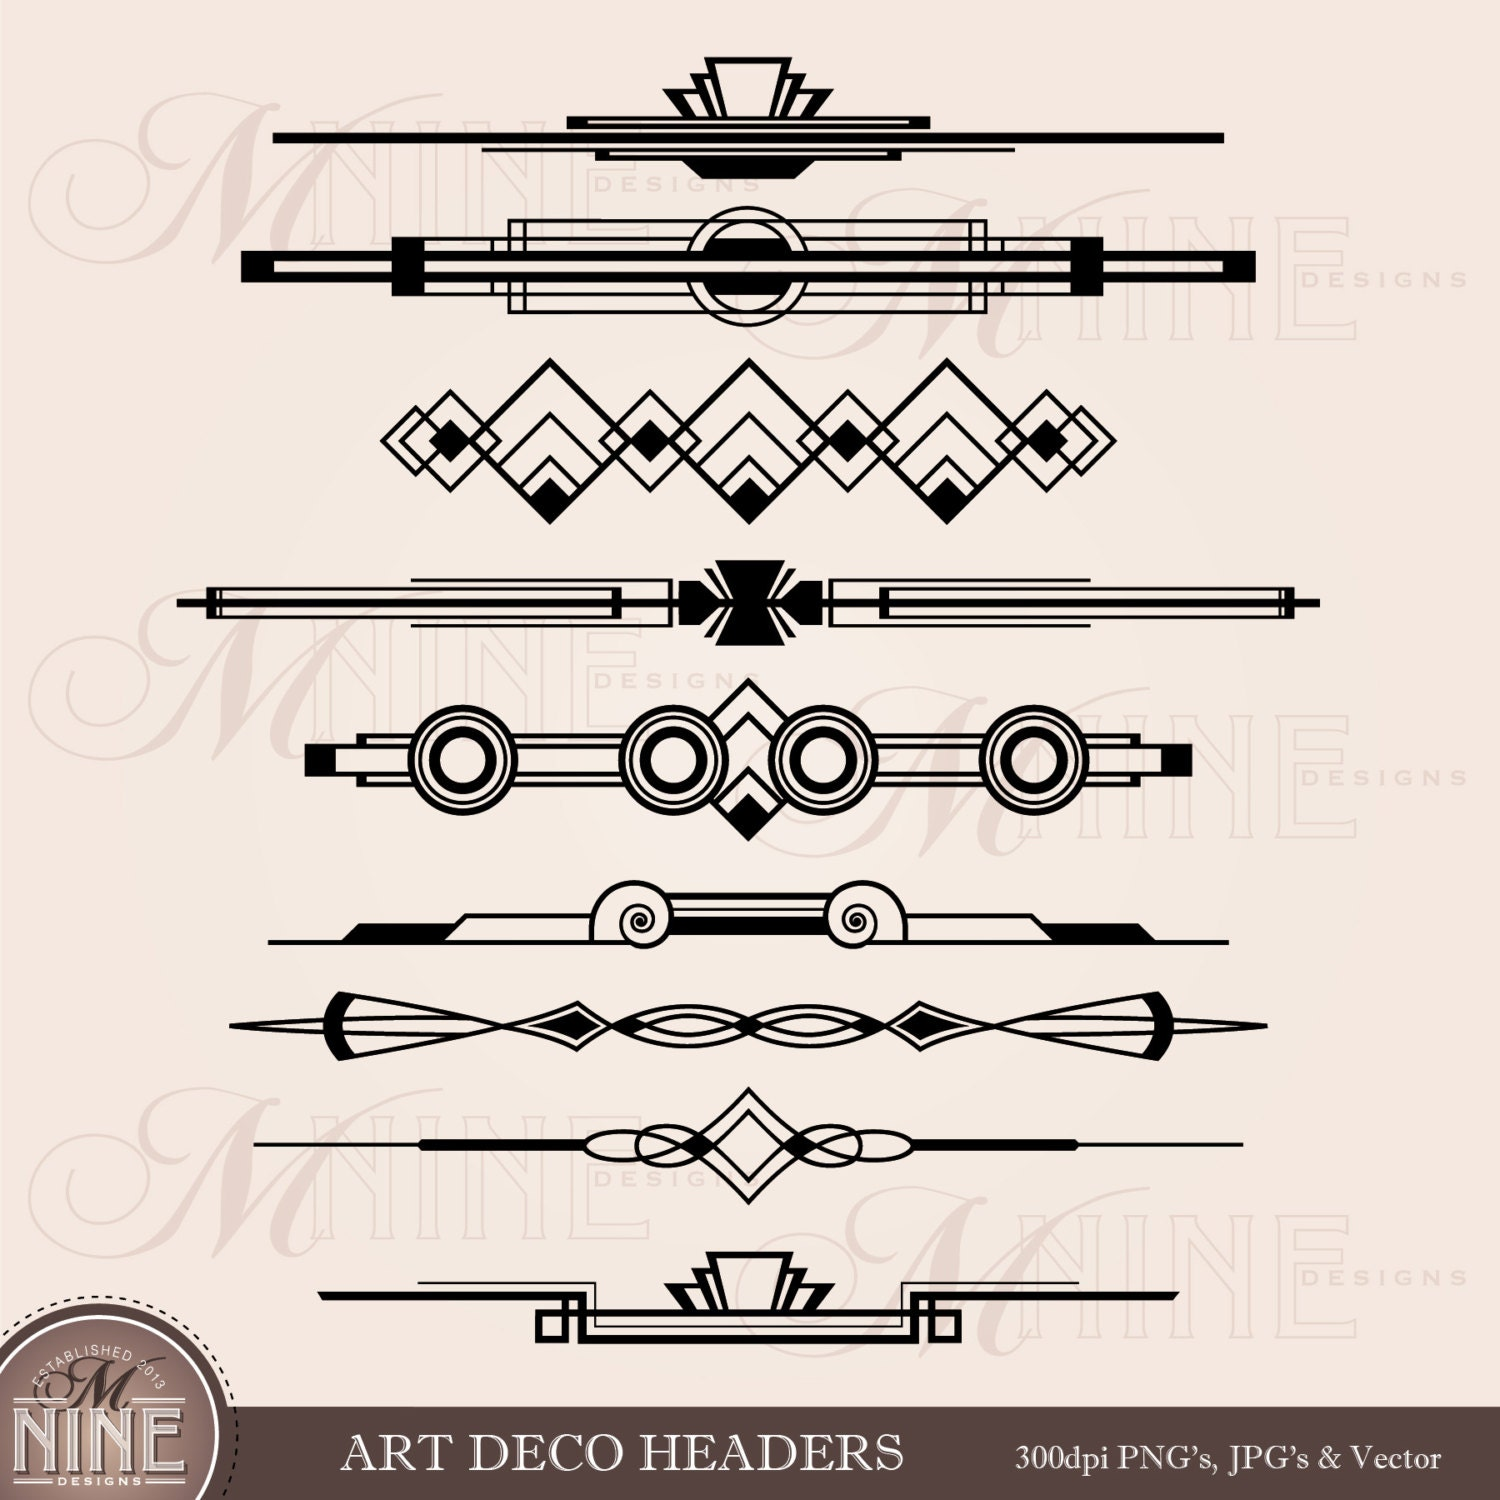 Art Deco Line Design : Art deco header clip accent clipart